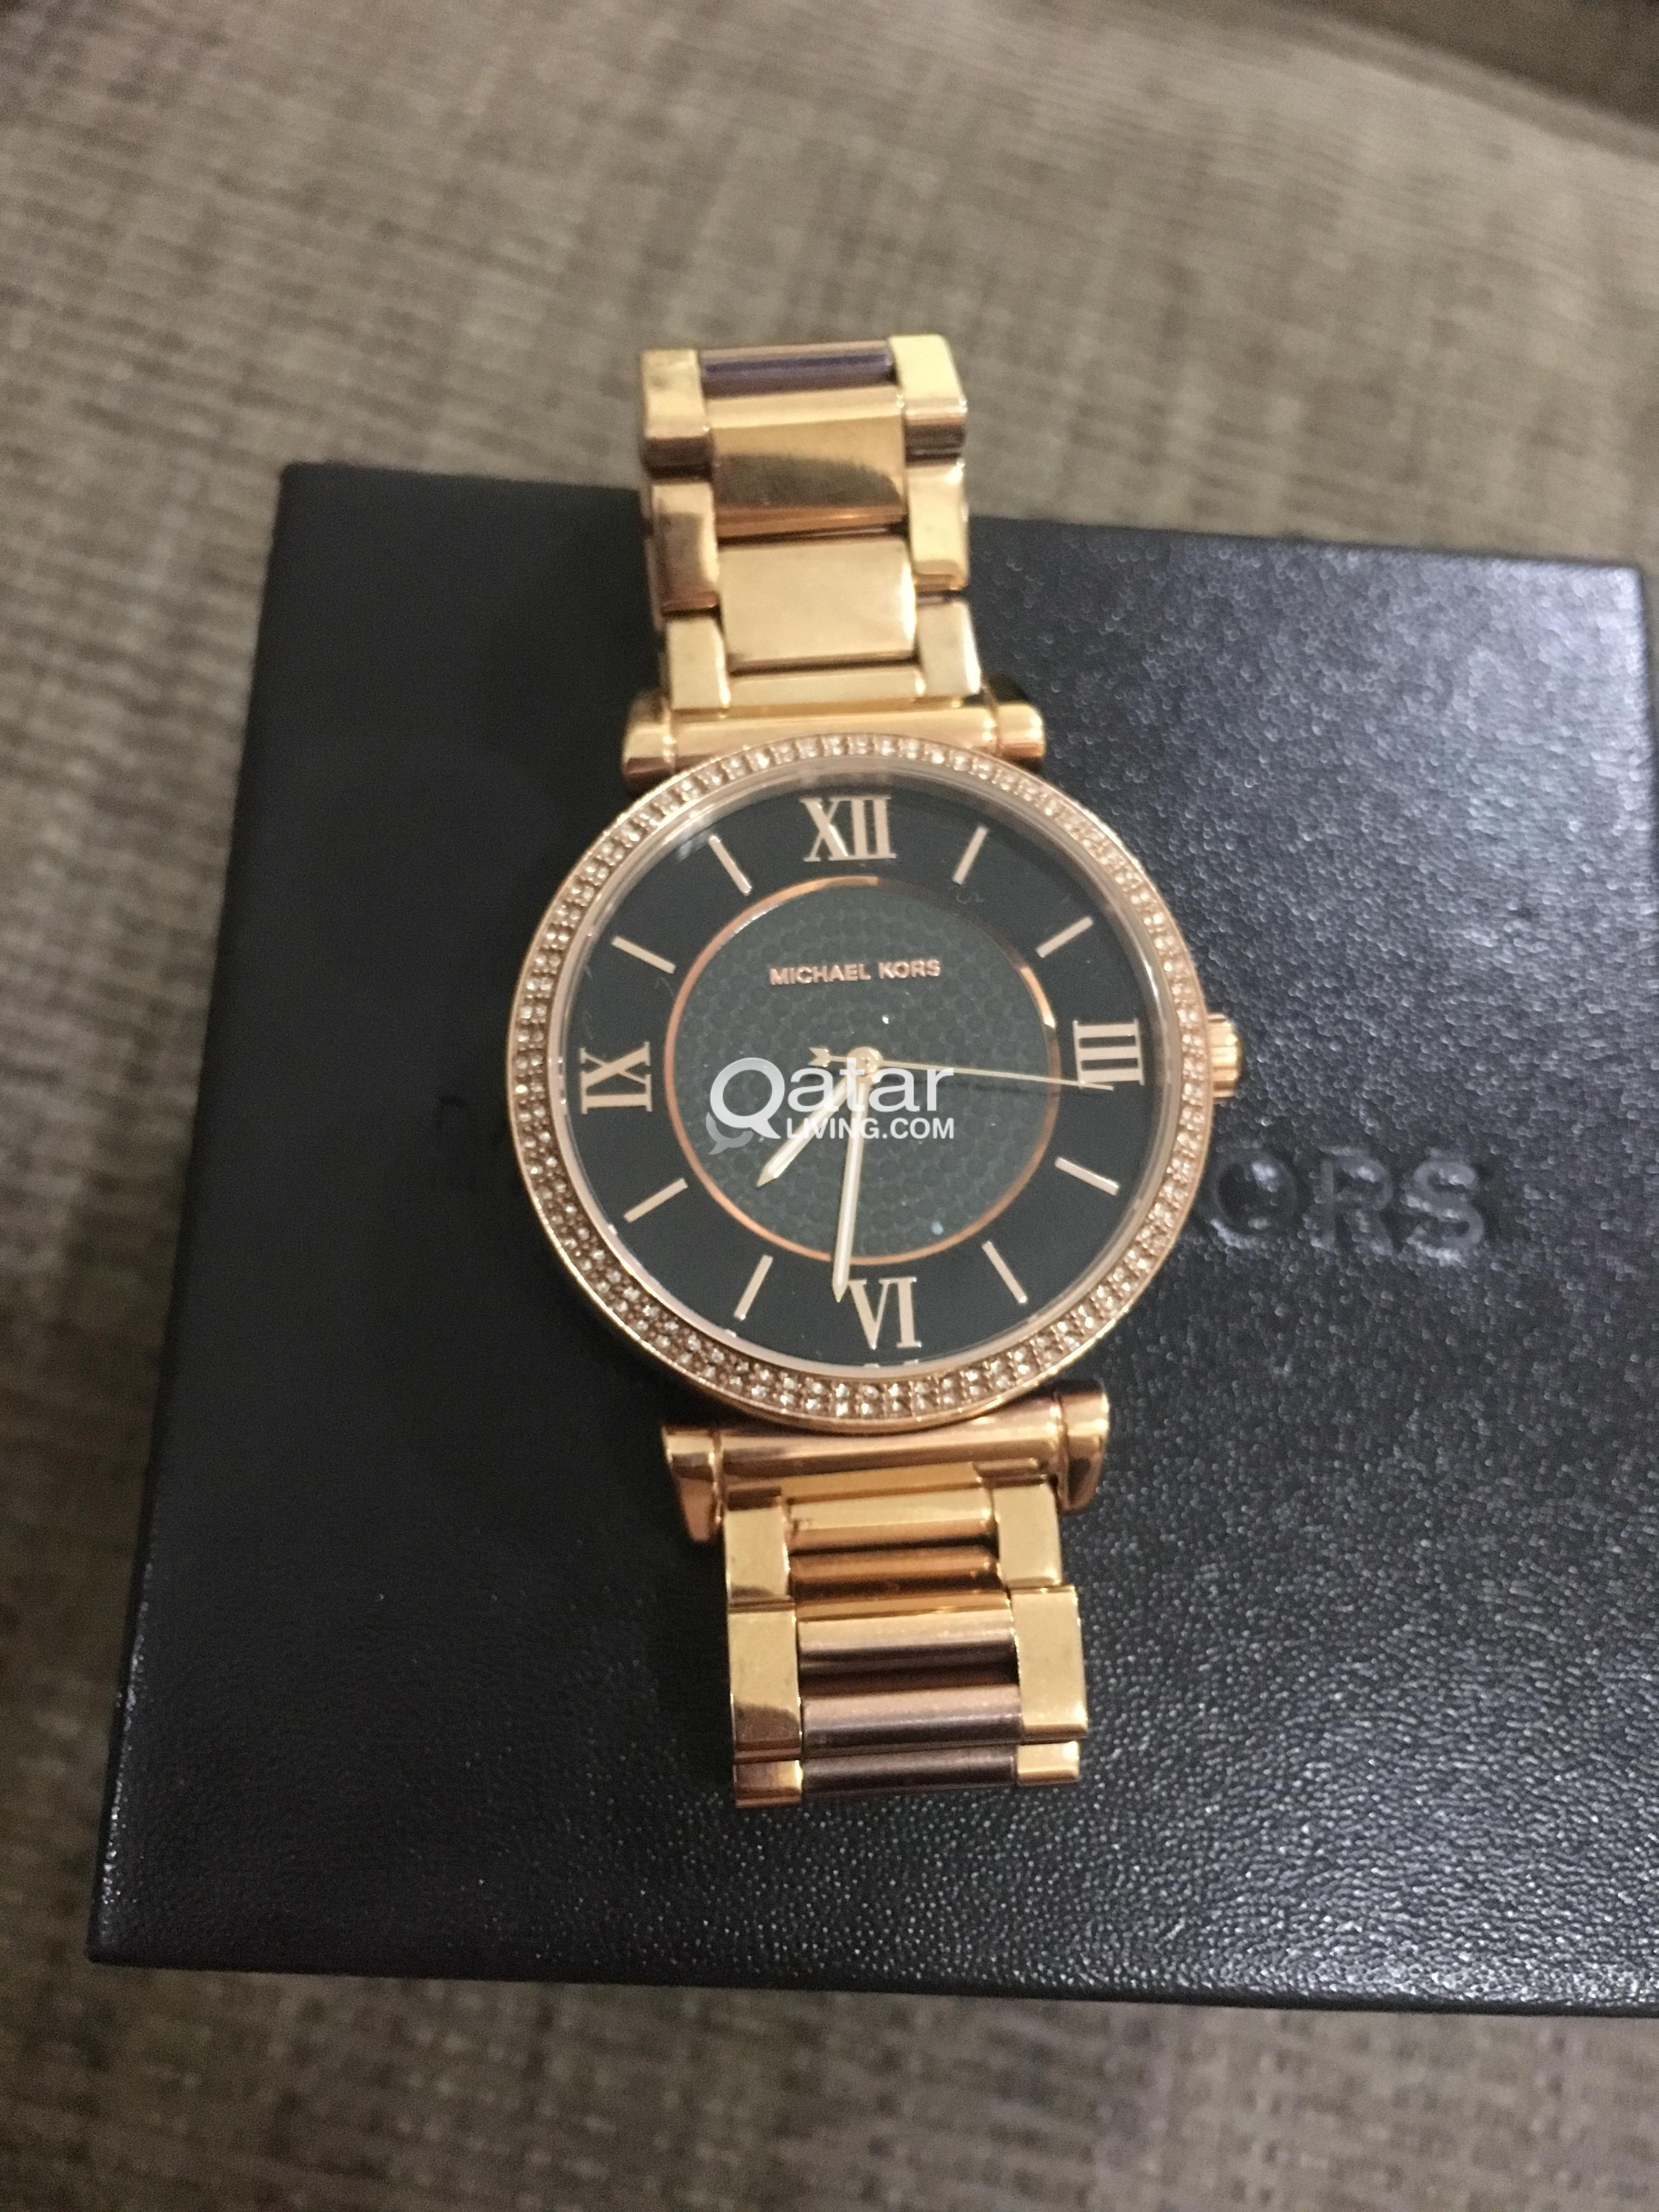 7ae94cd9ca25 title  title  title  title. Information. ORIGINAL PRELOVED MICHAEL KORS  WATCH ...